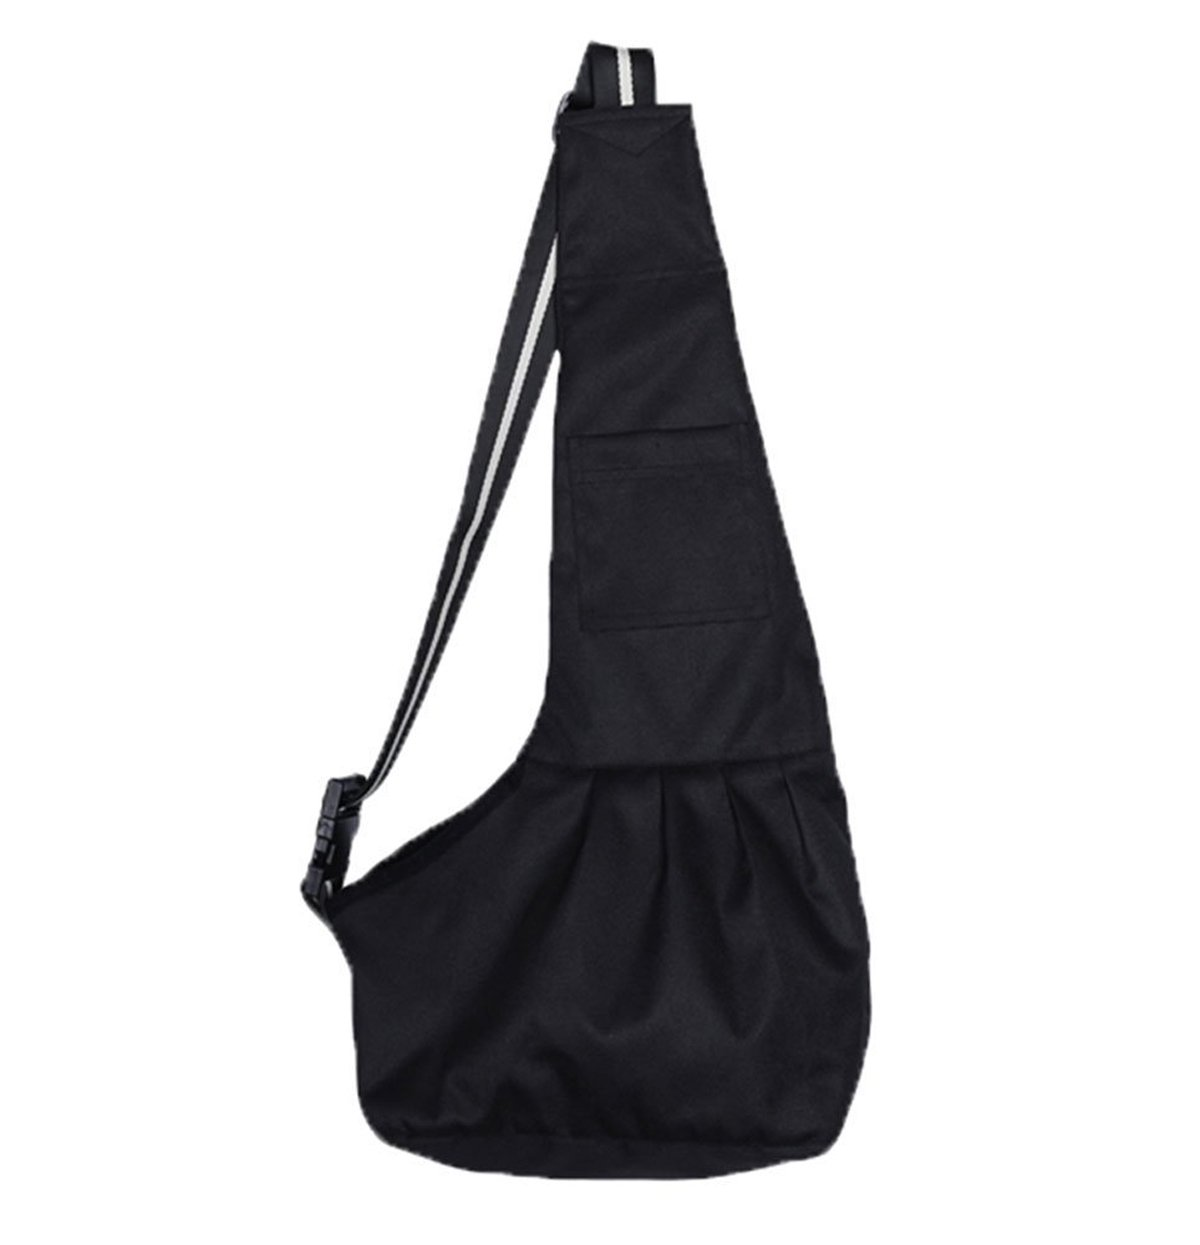 Prettysell Pet Dog Puppy Cat Carrier Bag Oxford Cloth Sling Single Shoulder Bag-Small,Black